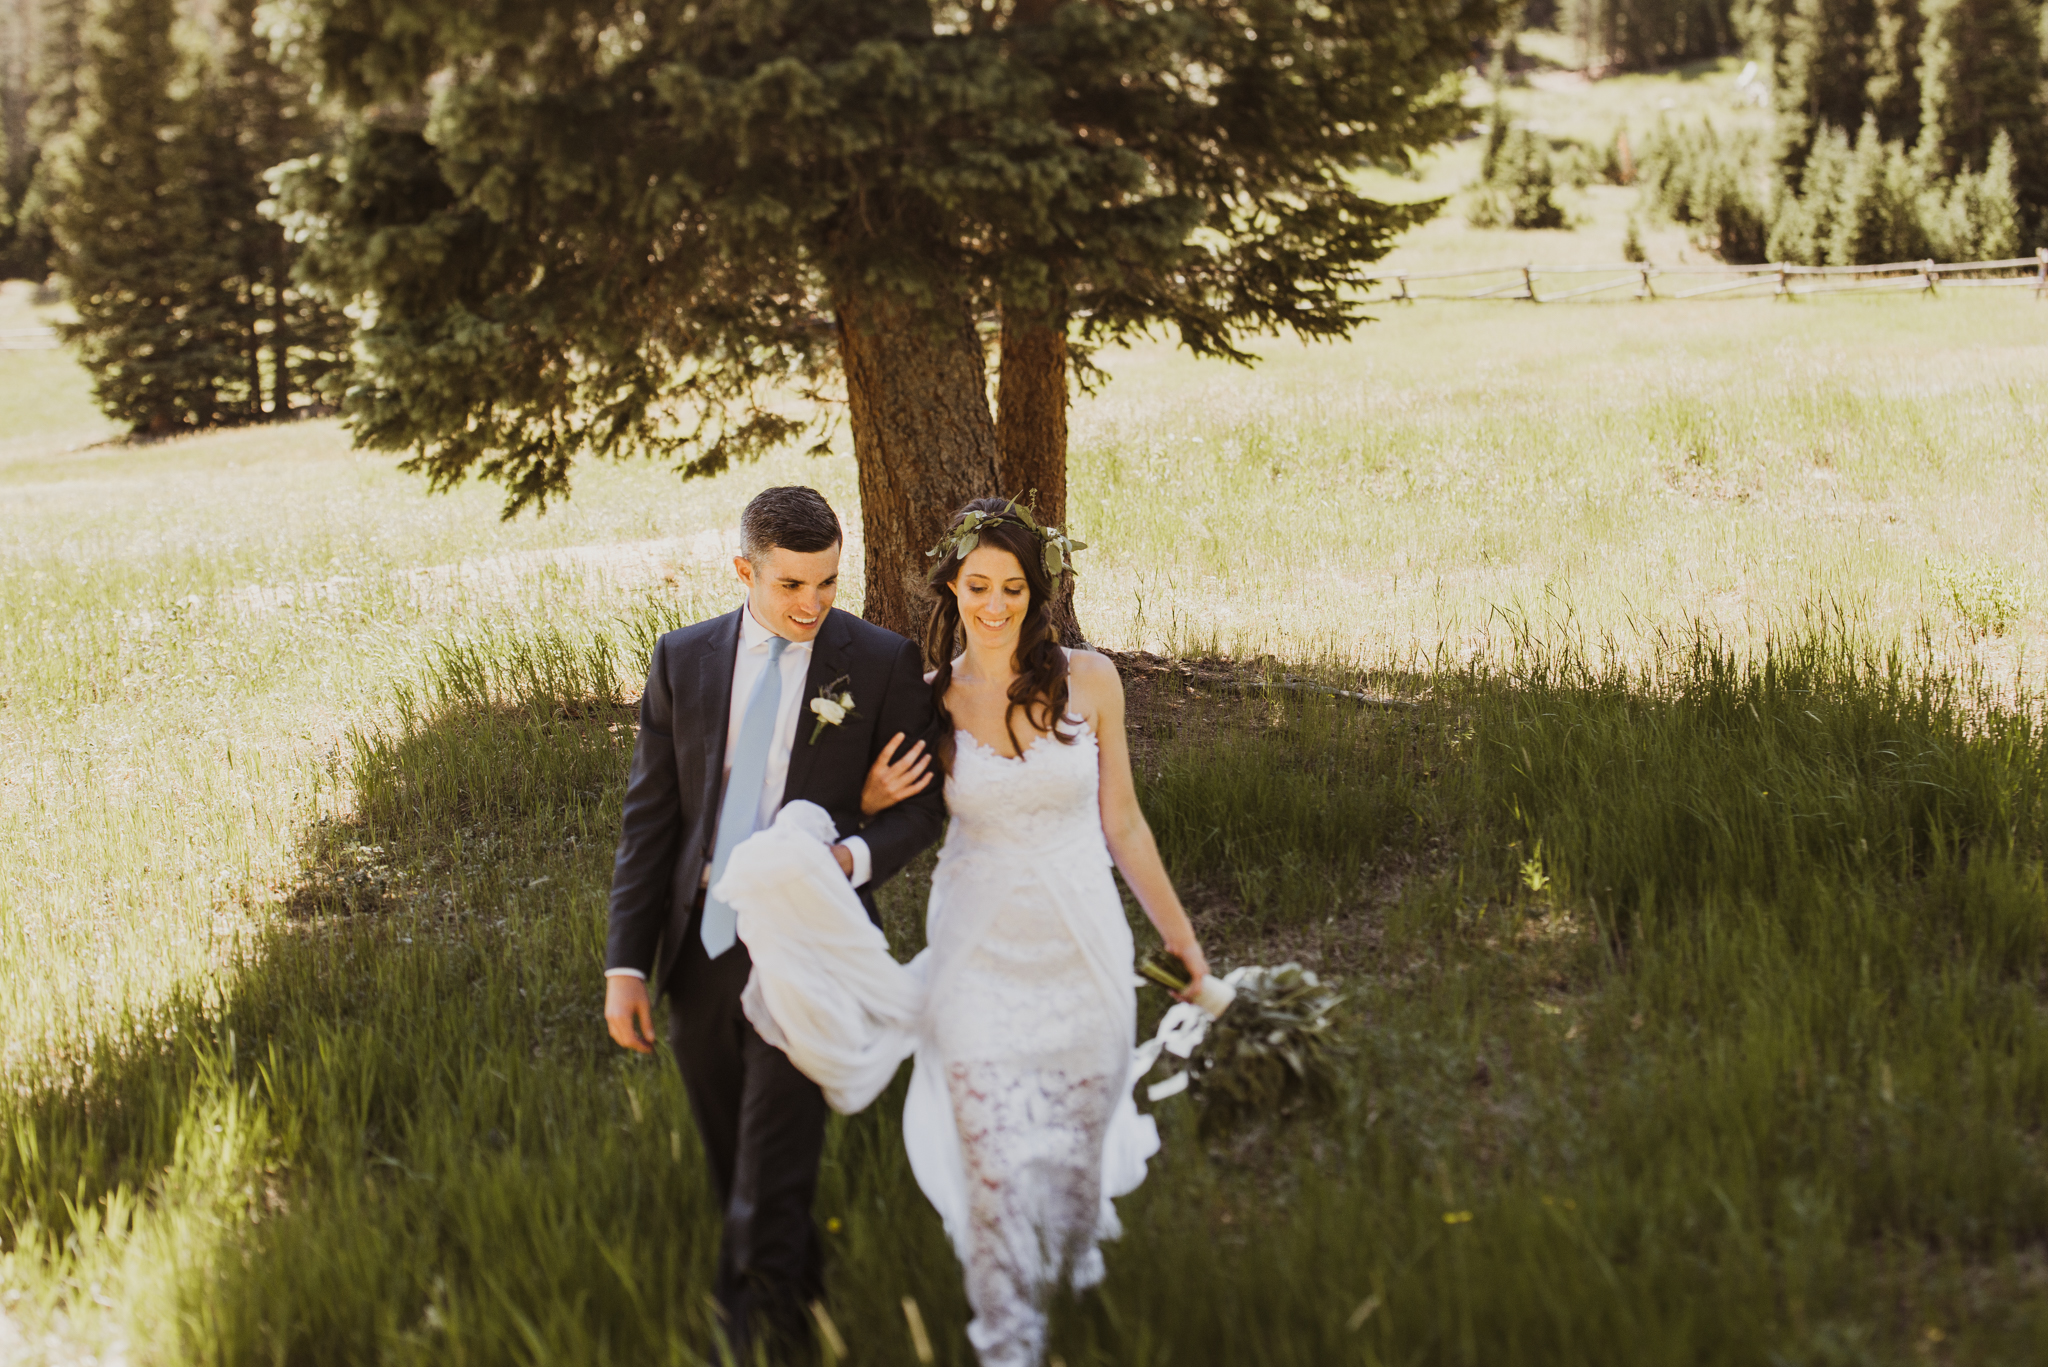 ©Isaiah + Taylor Photography - Estes National Park Adventure Elopement, Colorado Rockies-77.jpg